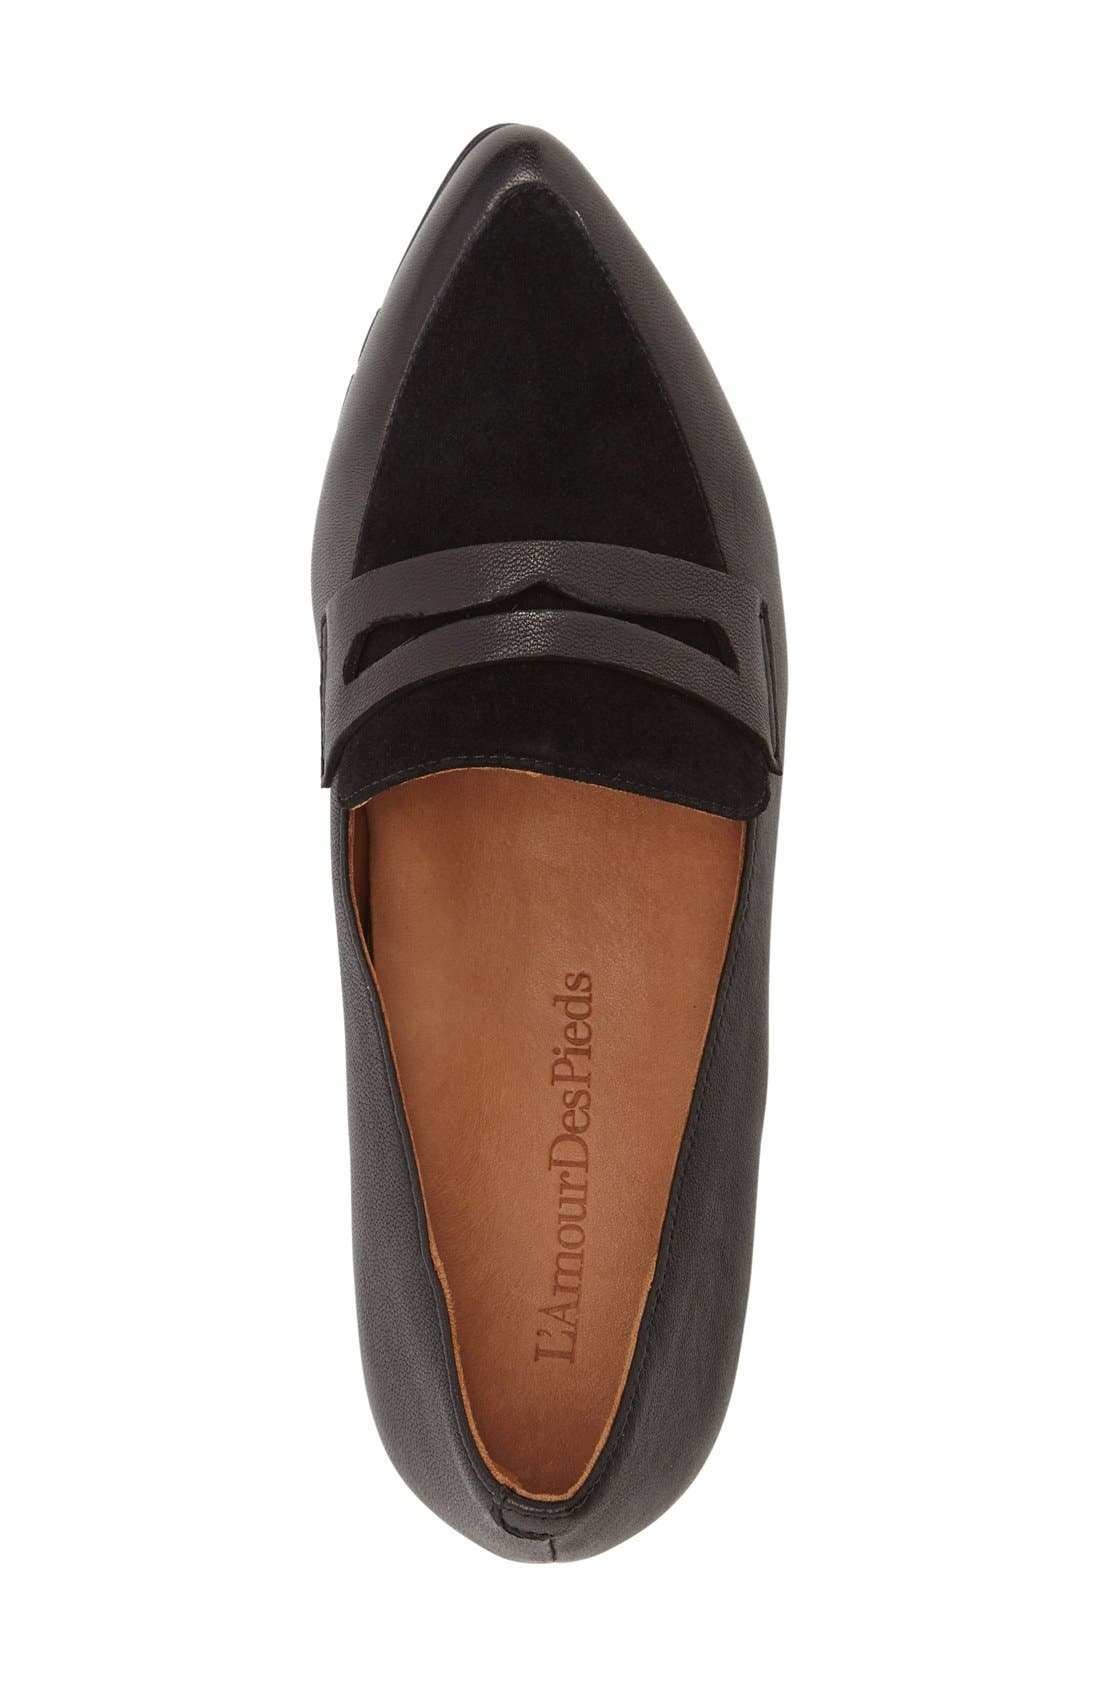 Alternate Image 3  - L'Amour des Pieds 'Miamore' Pointy Toe Loafer (Women)